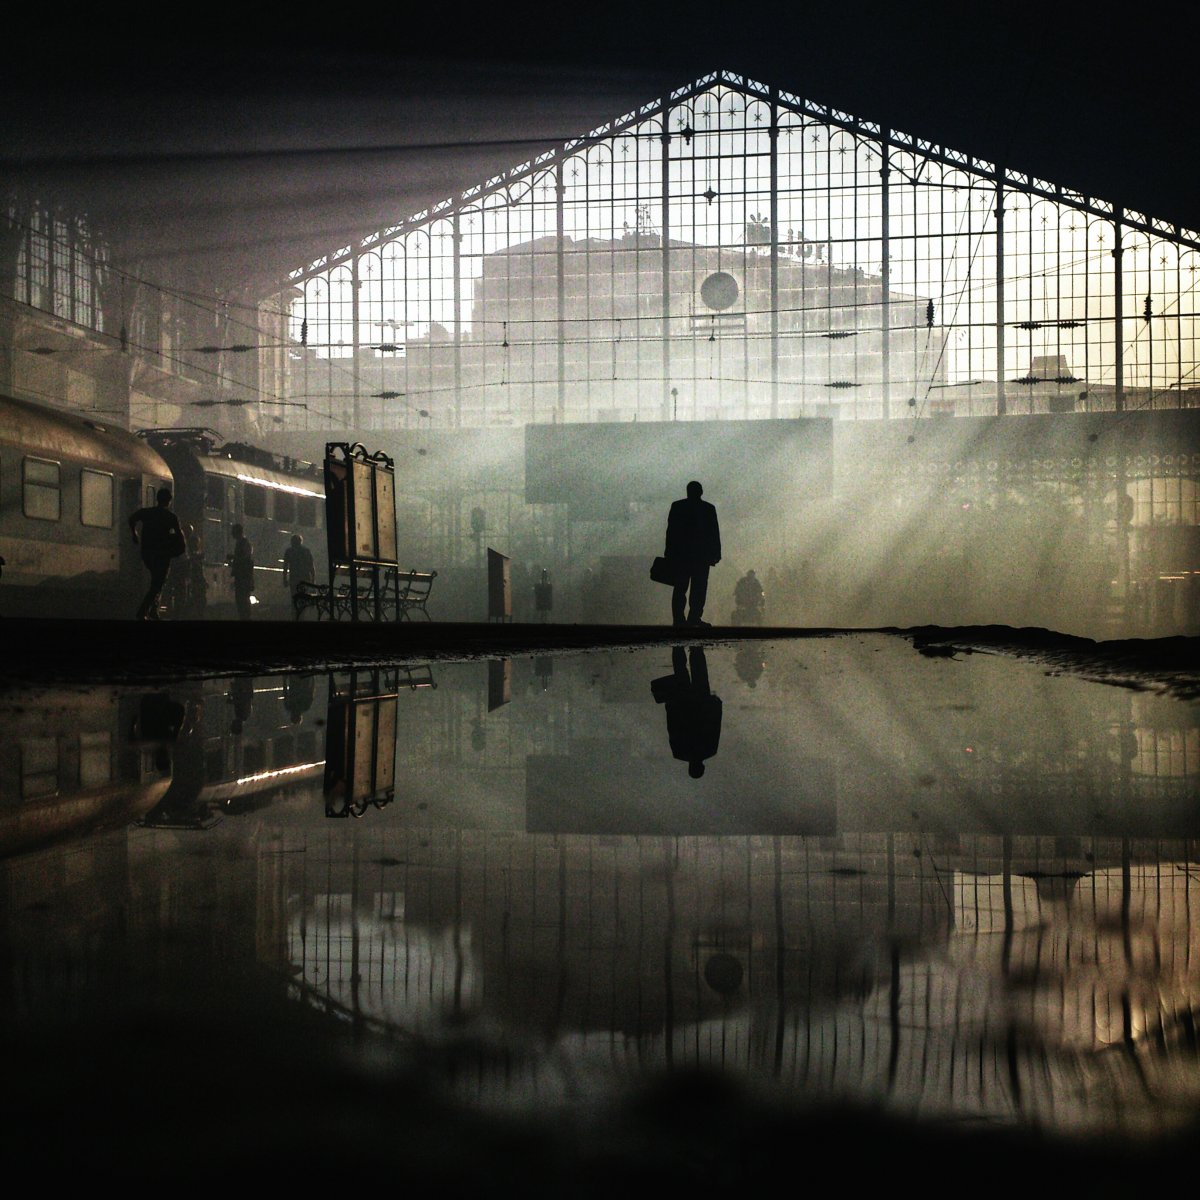 and-here-the-nyugati-train-station-makes-for-an-eerie-scene